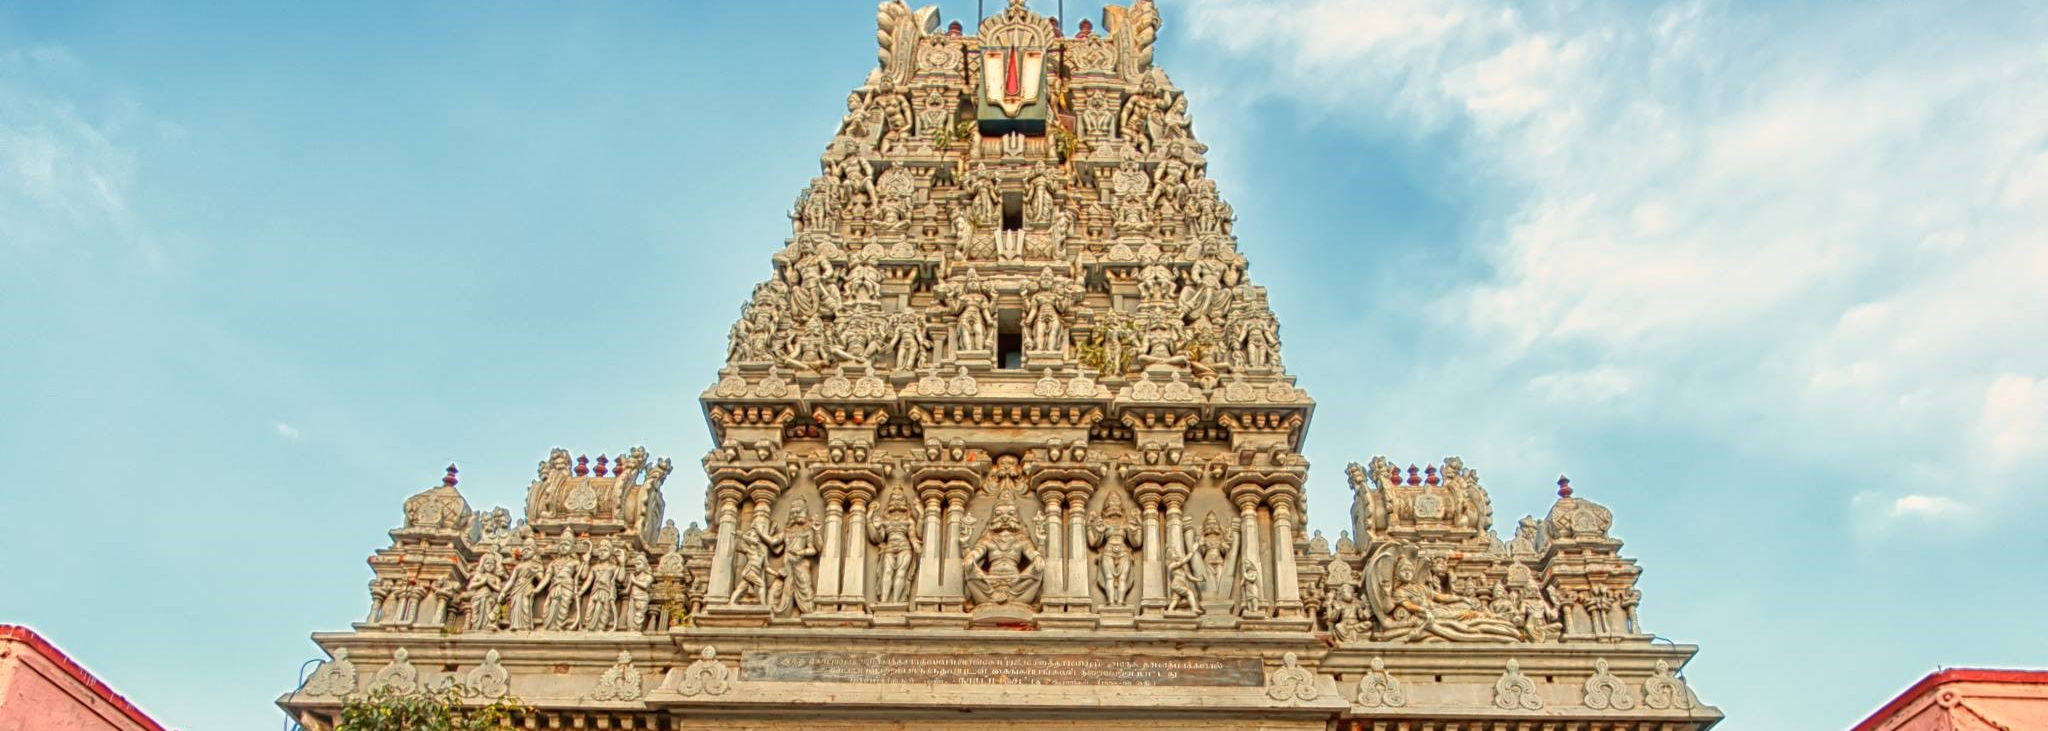 The Beautiful Temples of Chennai